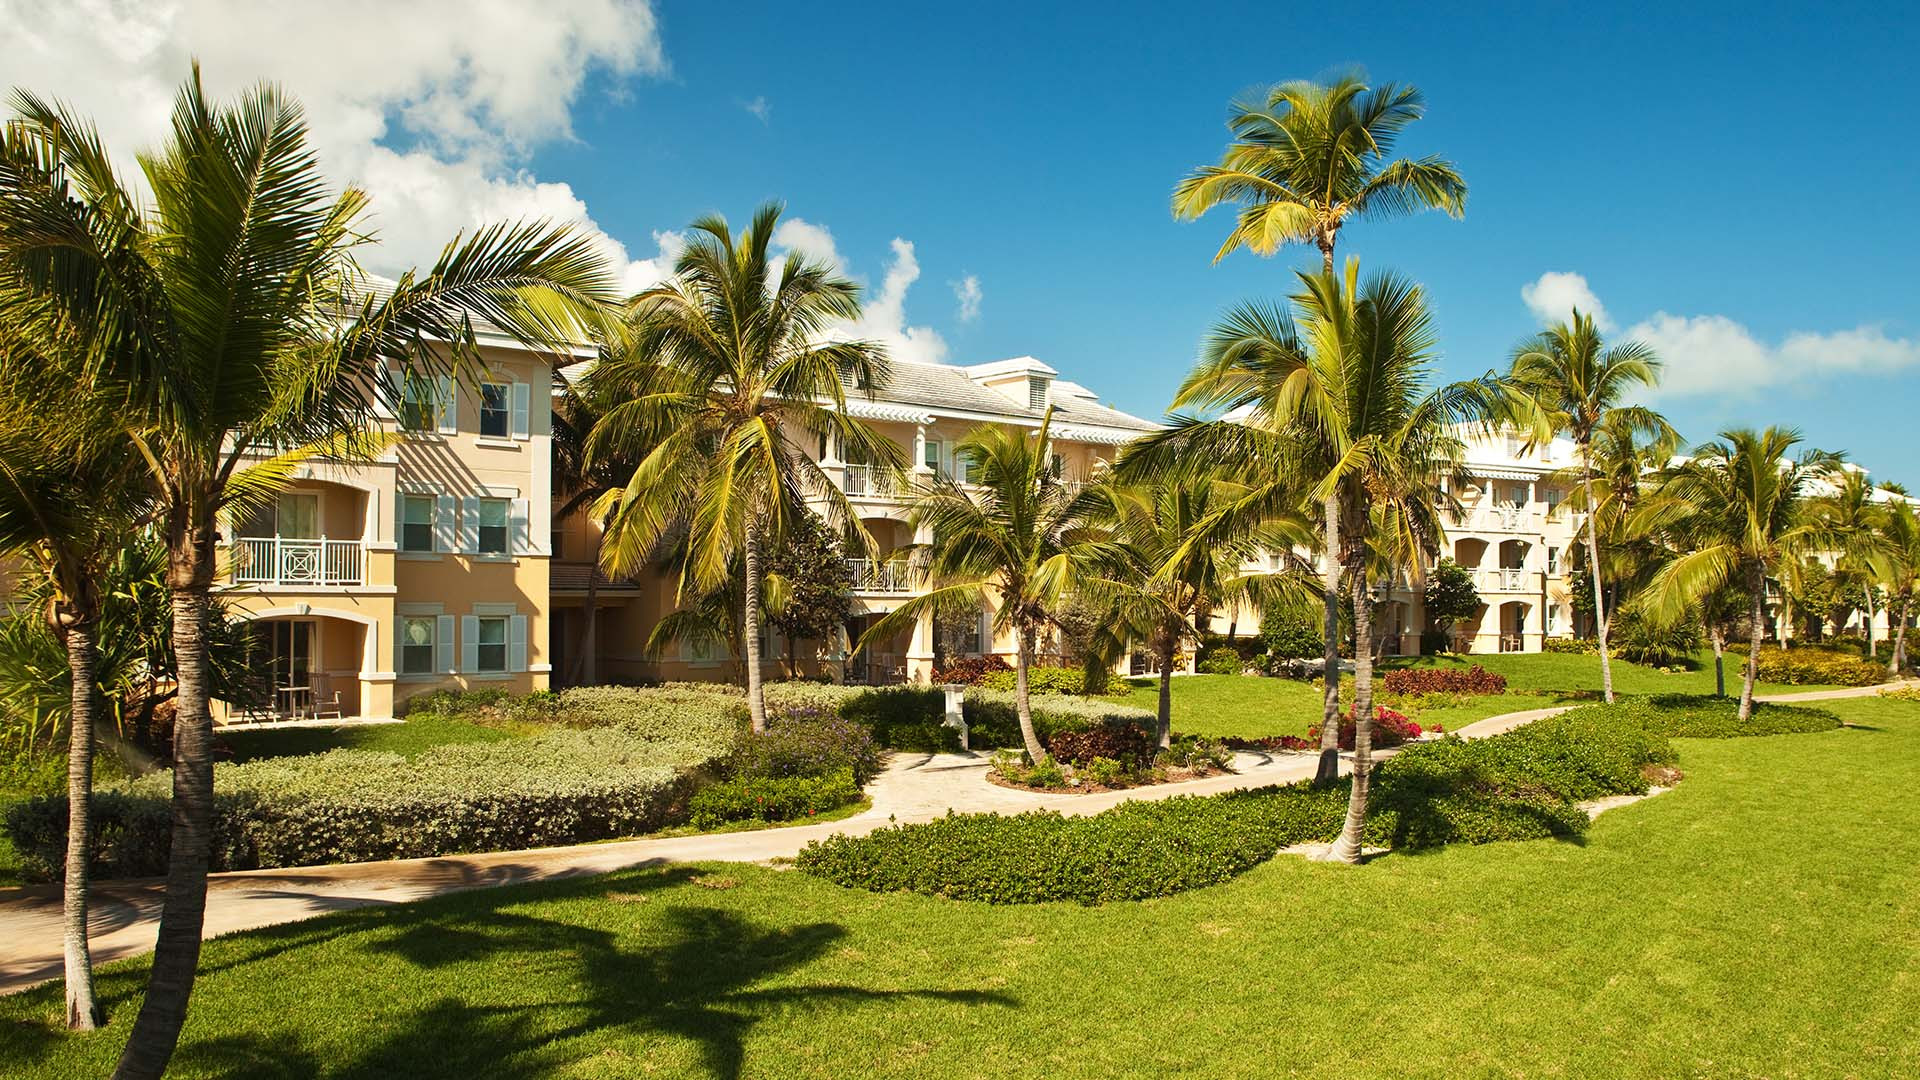 The villas at Sandals Emerald Bay, The Bahamas